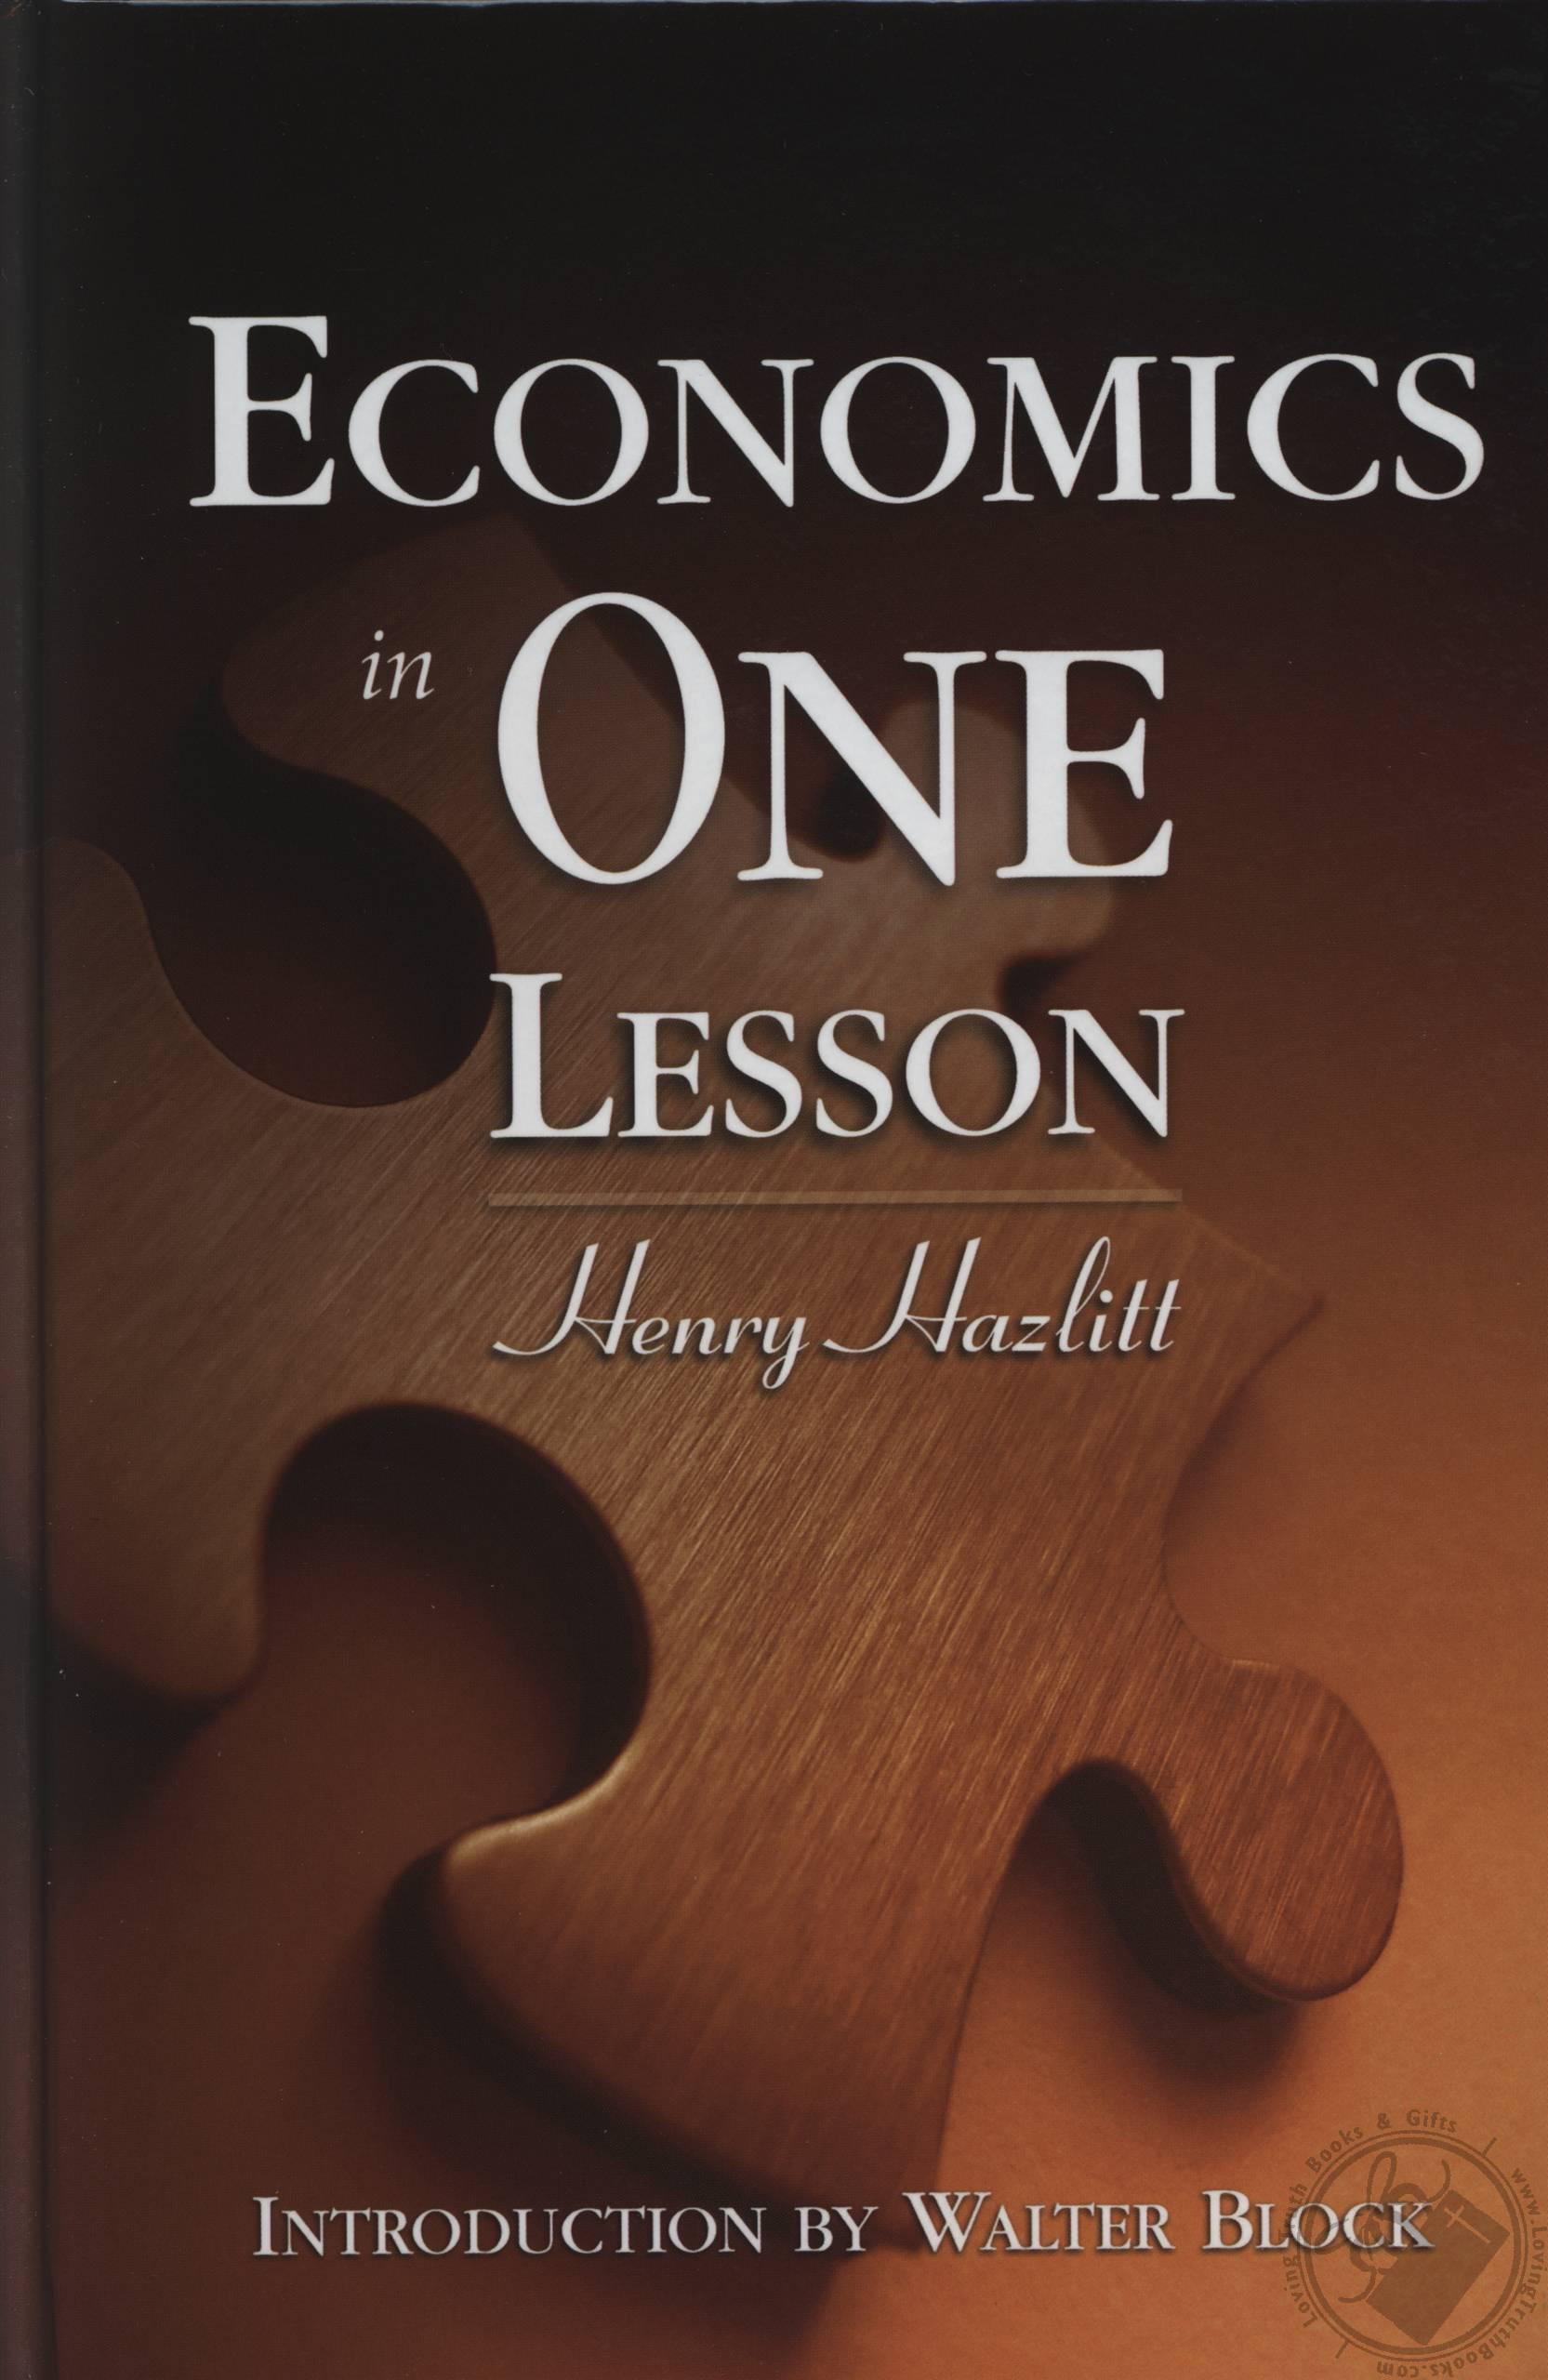 the simple lesson on the book economics in one lesson by henry hazlitt Economics in one lesson is an introduction to free market economics written by henry hazlitt and published in 1946 hazlitt begins his monumental book by describing the problems with economic science, showing that its fallacies are greatly exacerbated compared to other scientific fields because of special interests in government.